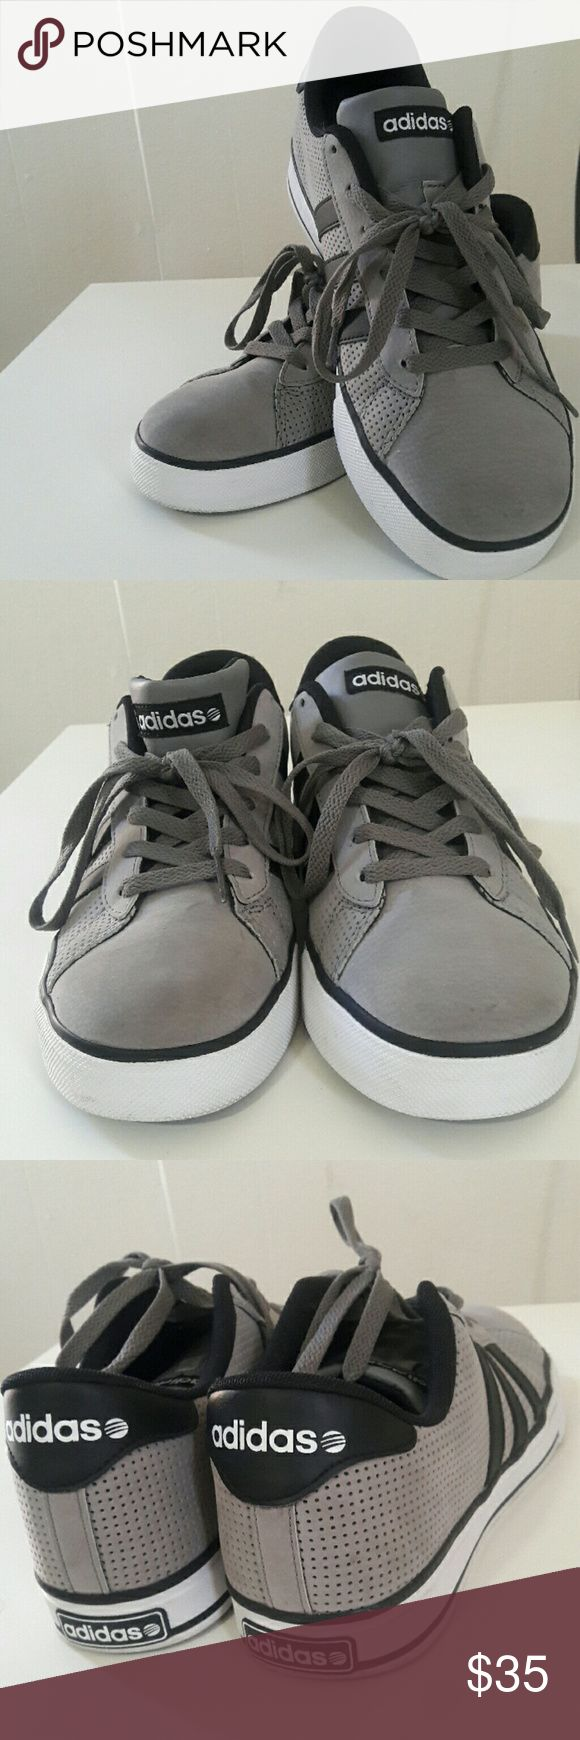 Mens Adidas Shoes Almost new Adidas Neo shoes for men size 8. These shoes have ortholite comfort foam insoles that make it heaven to anyone wearing them. Only worn twice still in excellent condition. adidas Shoes Sneakers